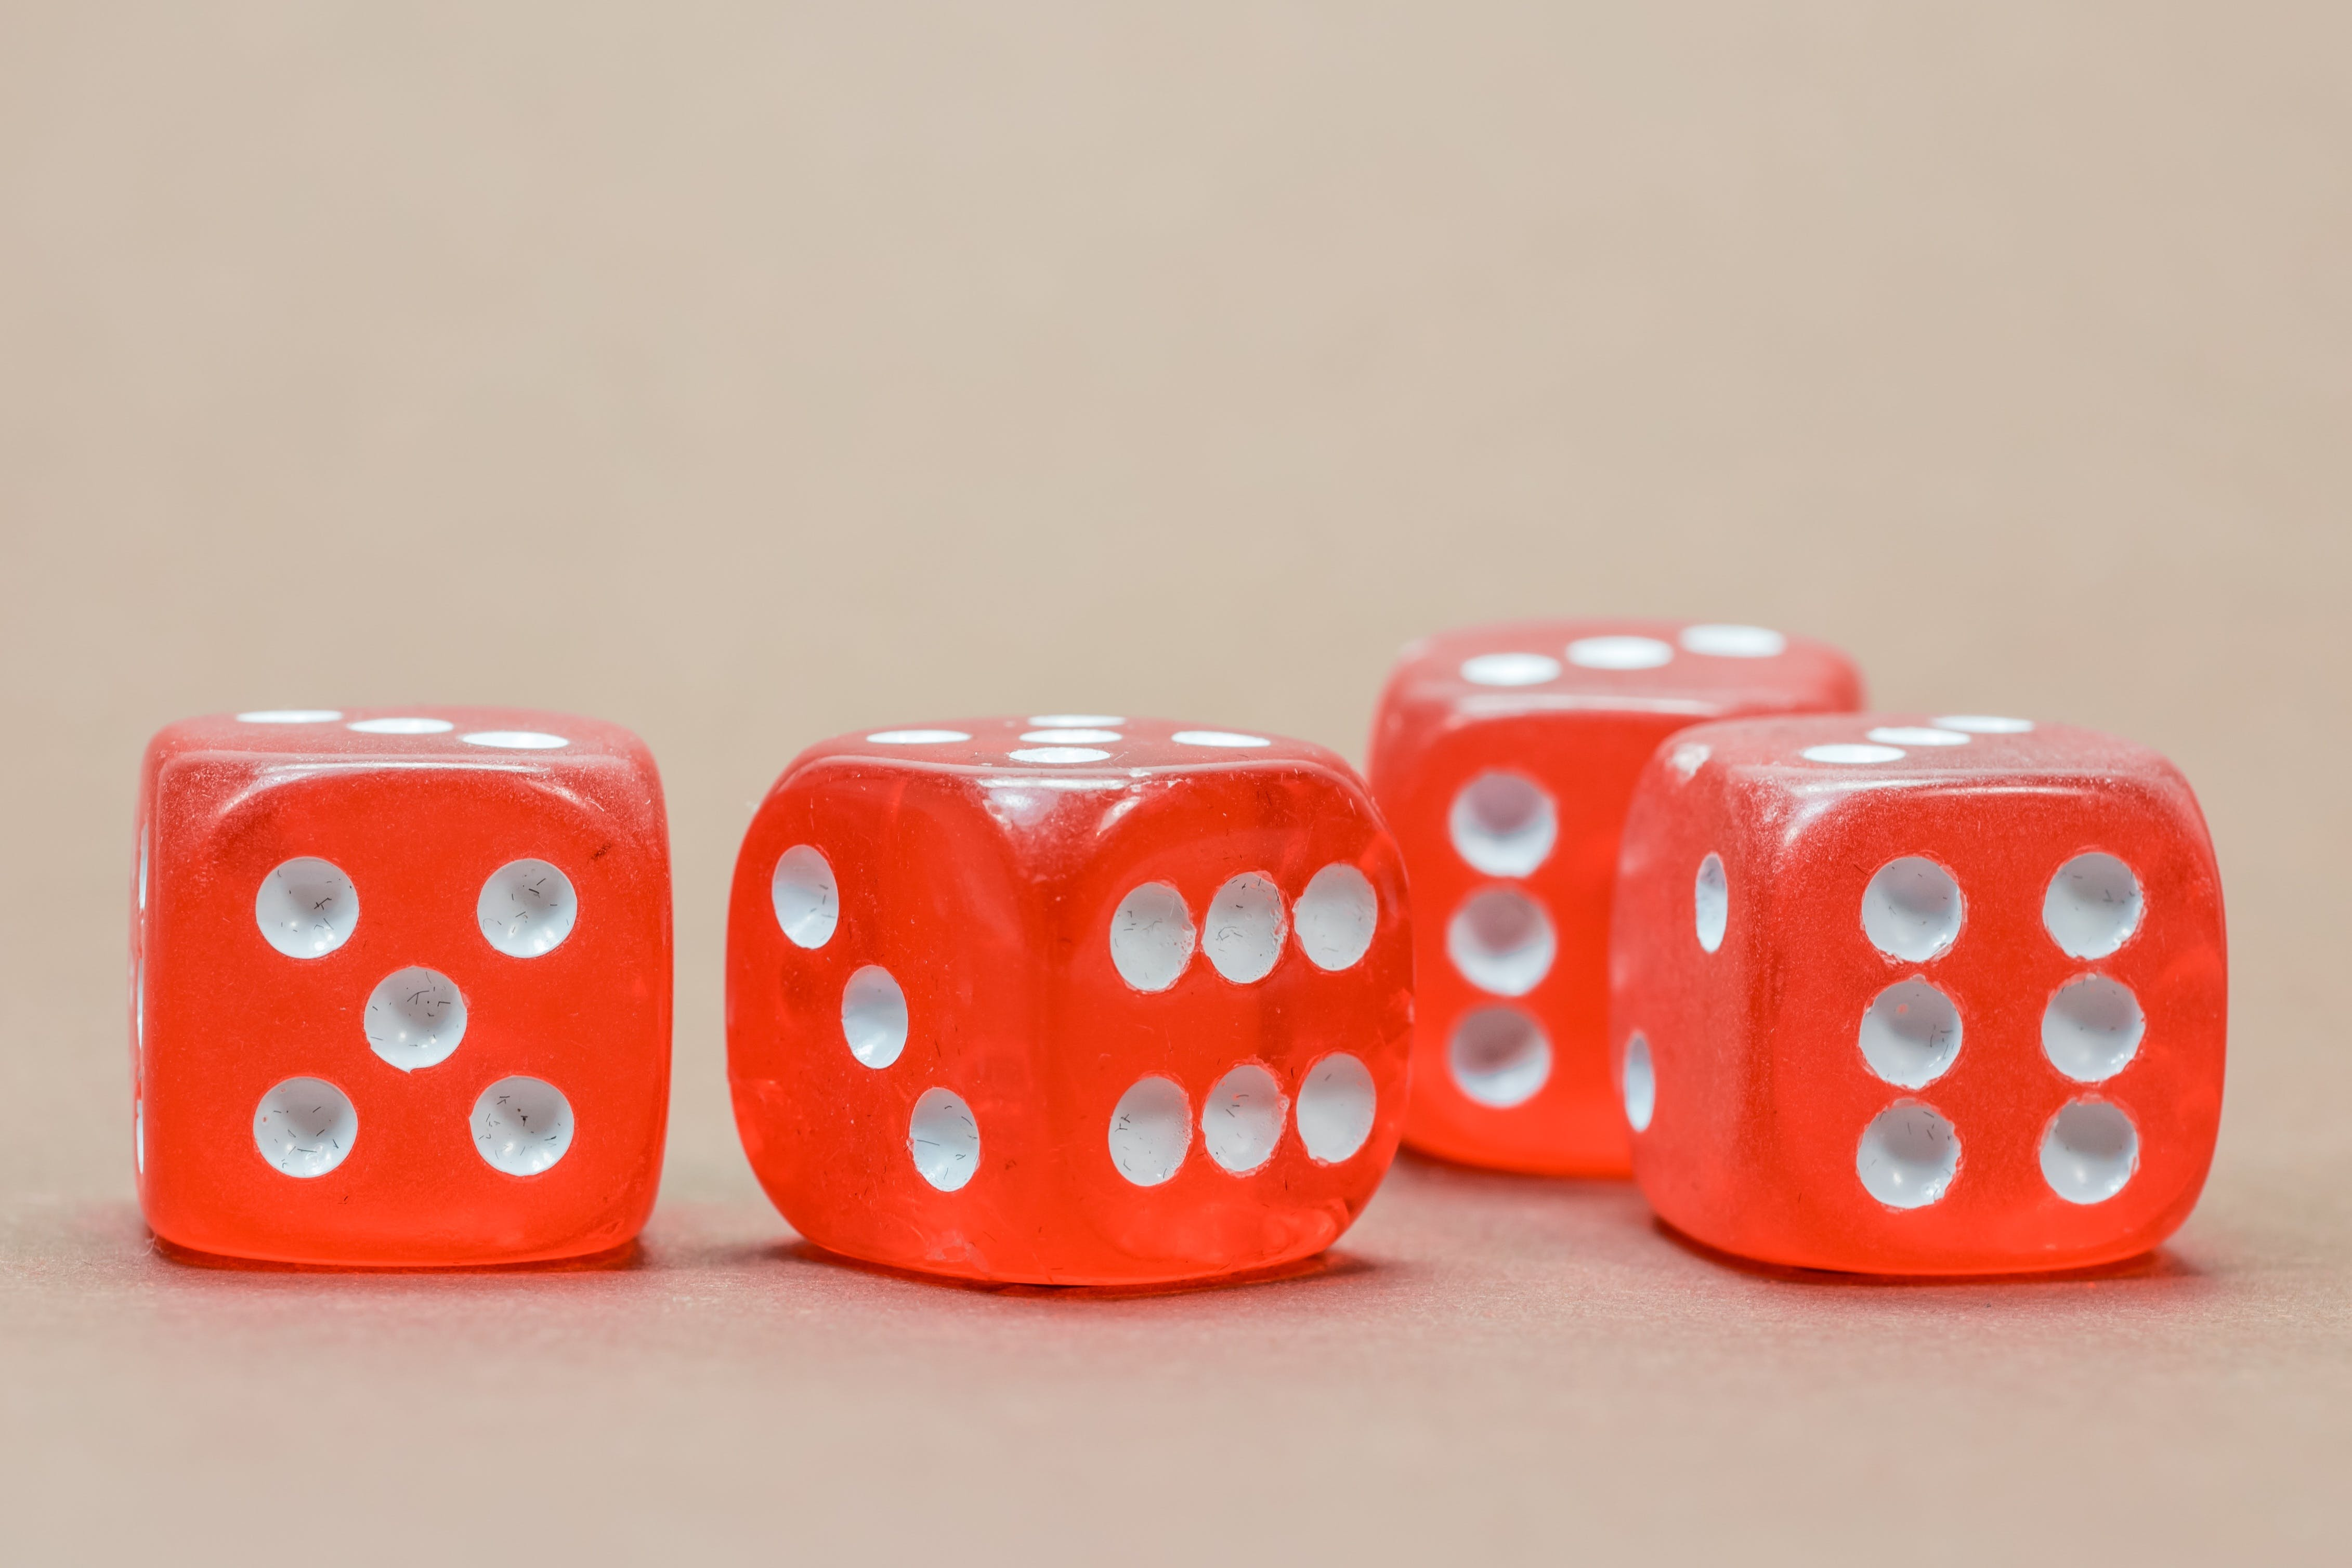 Close Up Photography of 4 Red White Dice